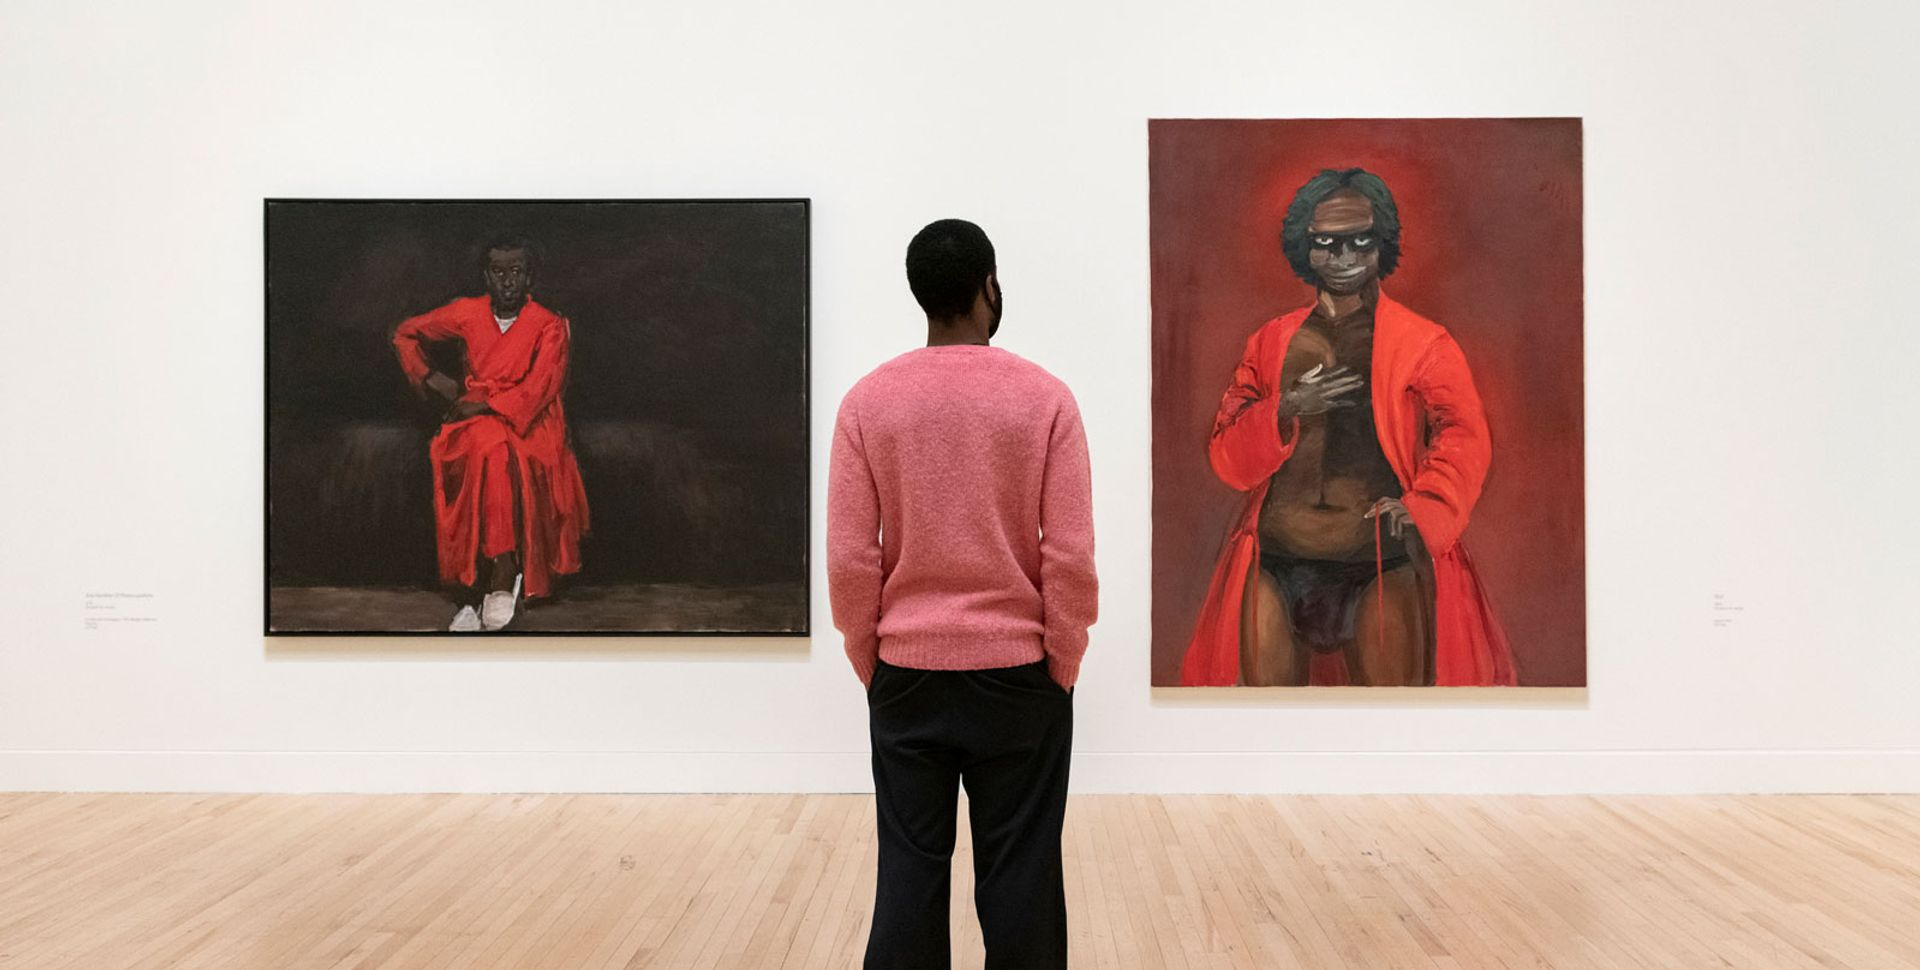 Installation view of Lynette Yiadom-Boakye's exhibition at Tate Britain